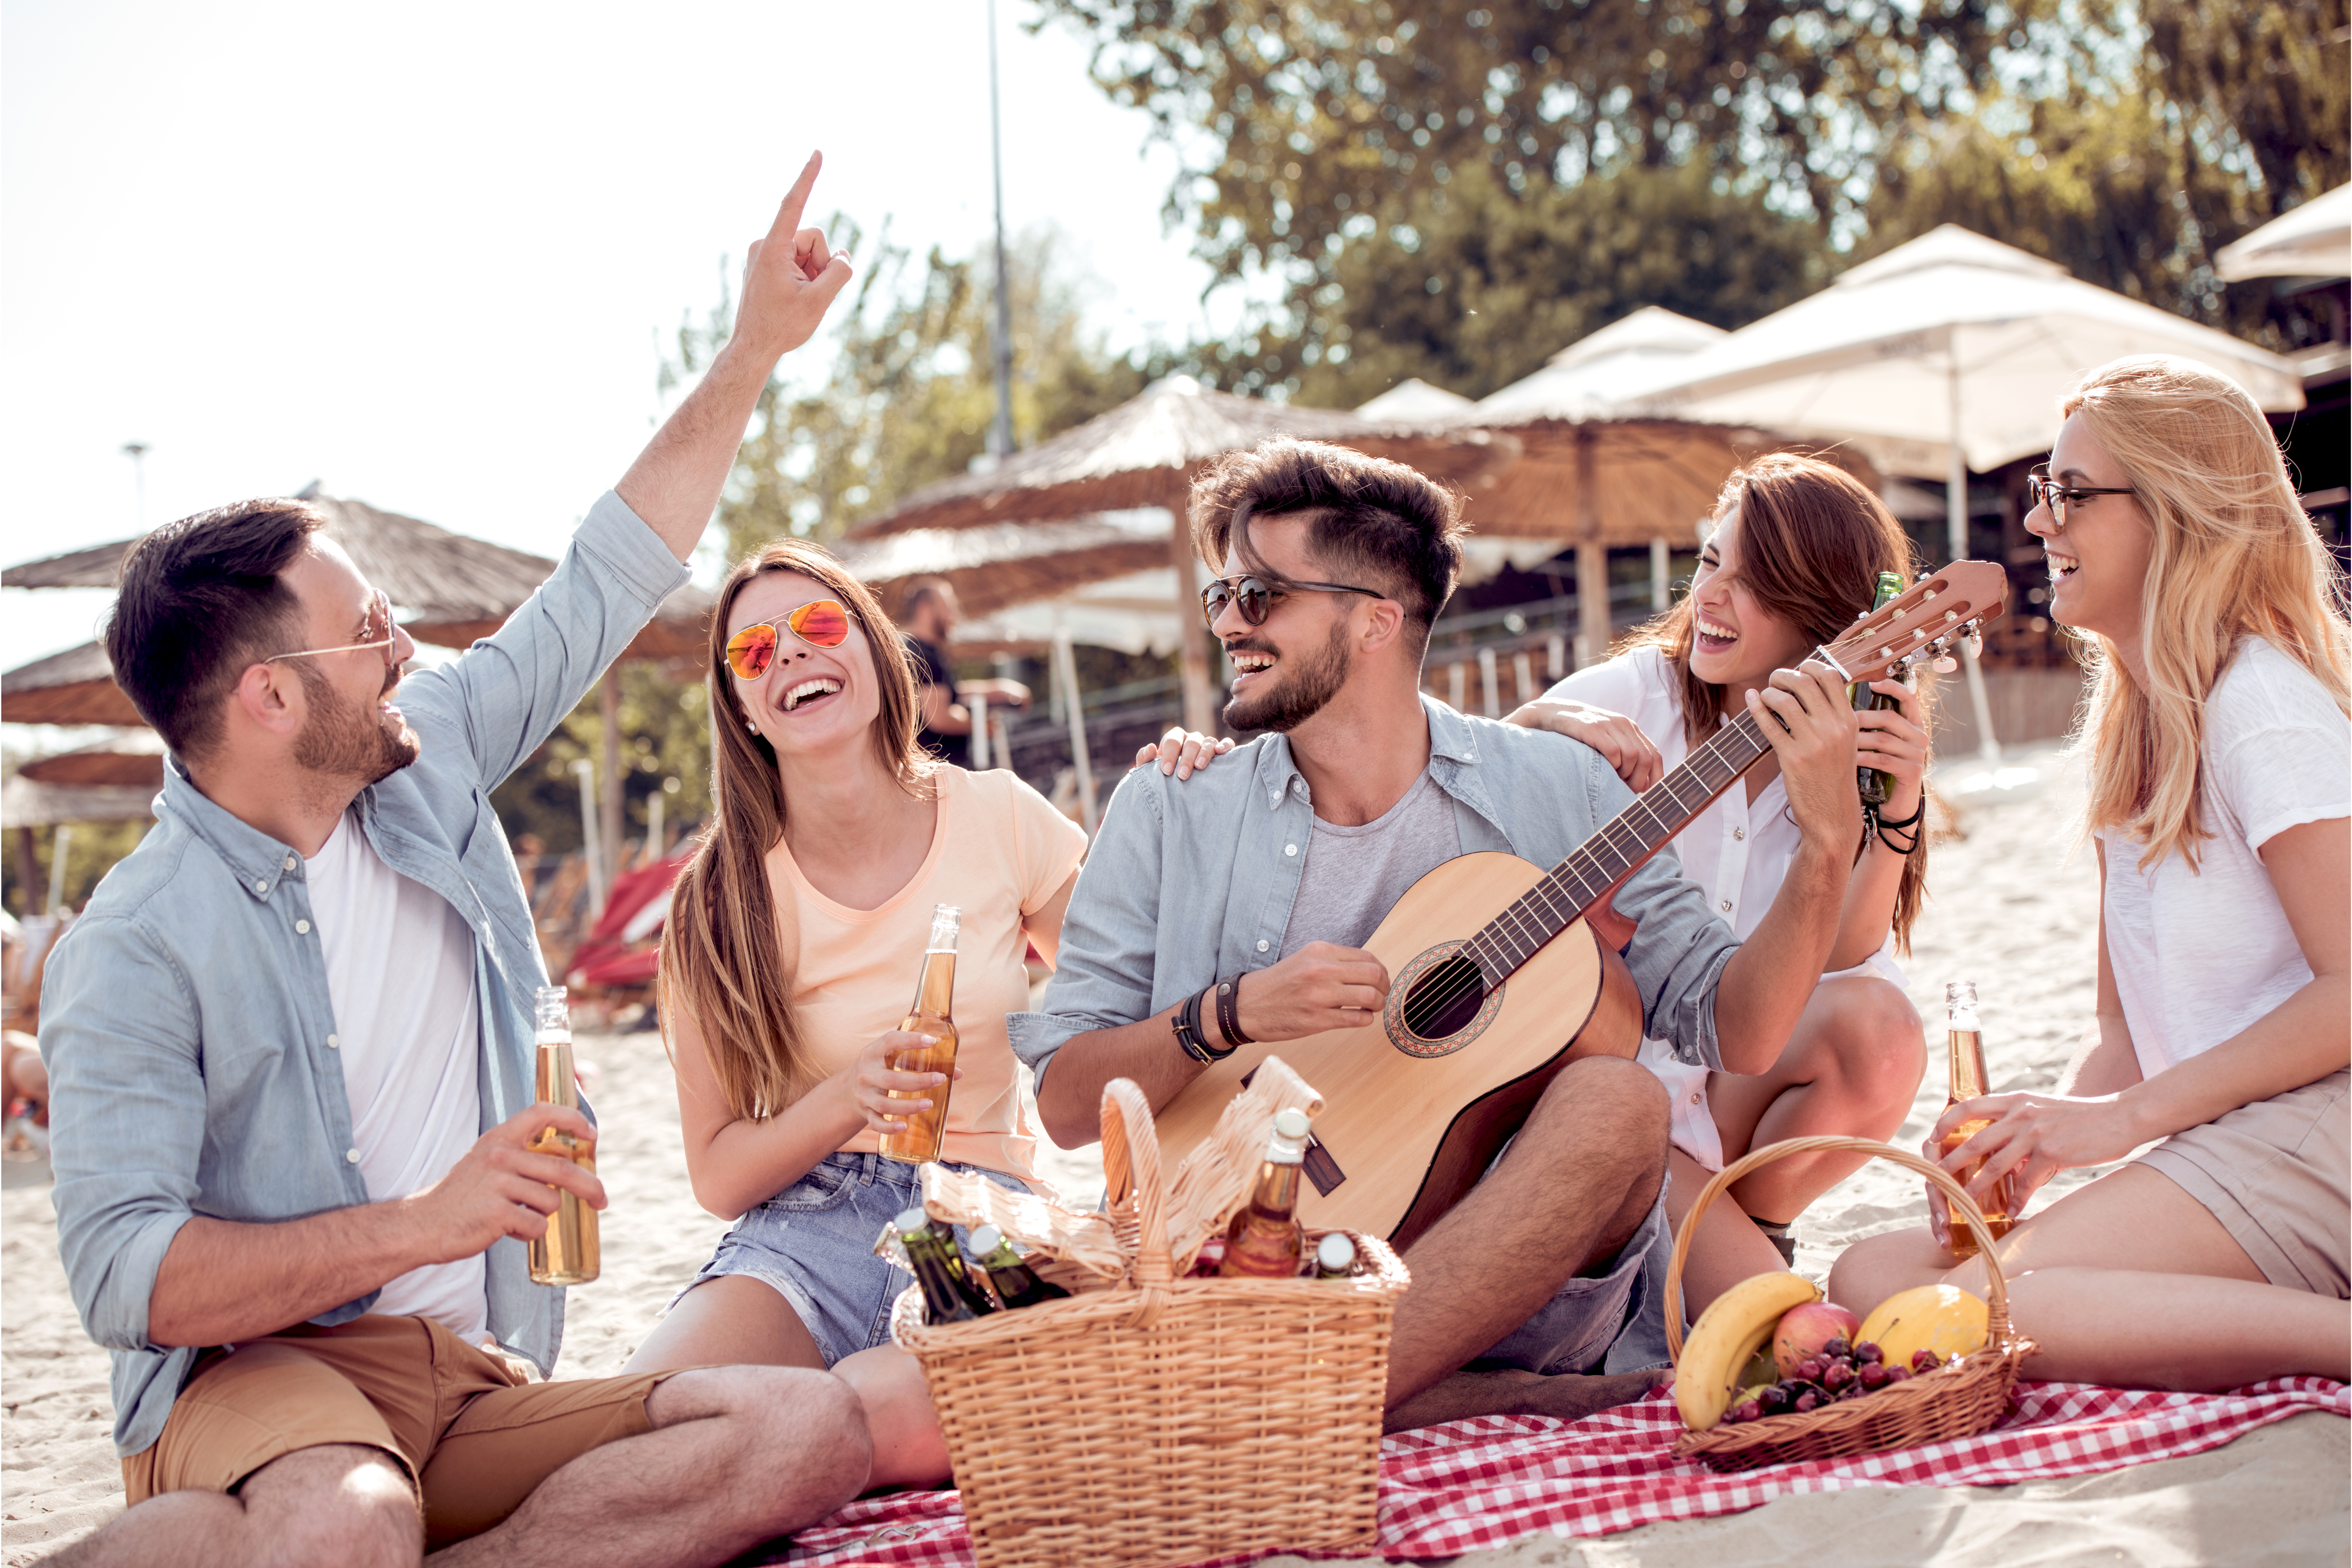 Group of young people drinking cider outdoors at a picnic, demonstrating the benefits of online communities in market research